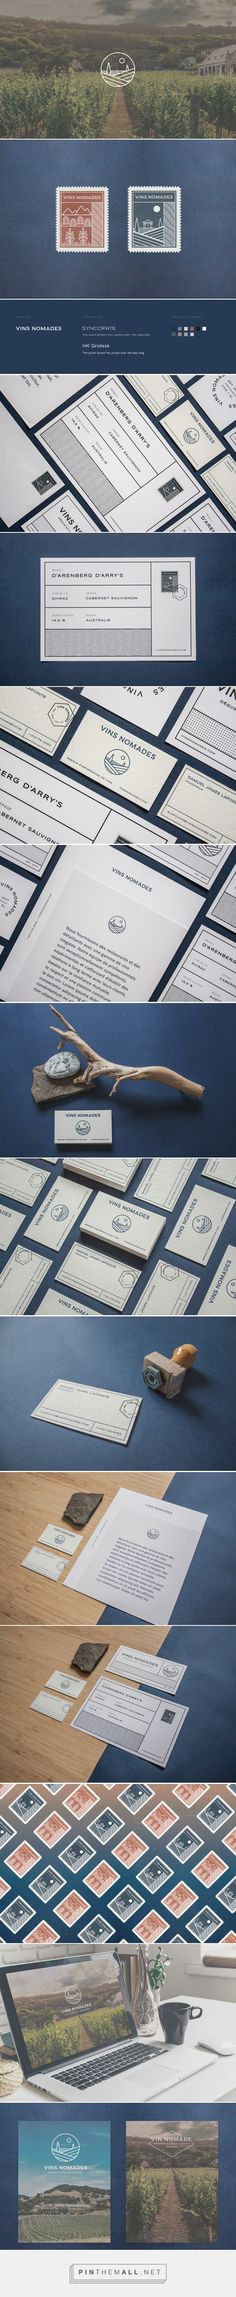 Vins Nomades Identity & Branding on Behance, by Alexandre Mercier